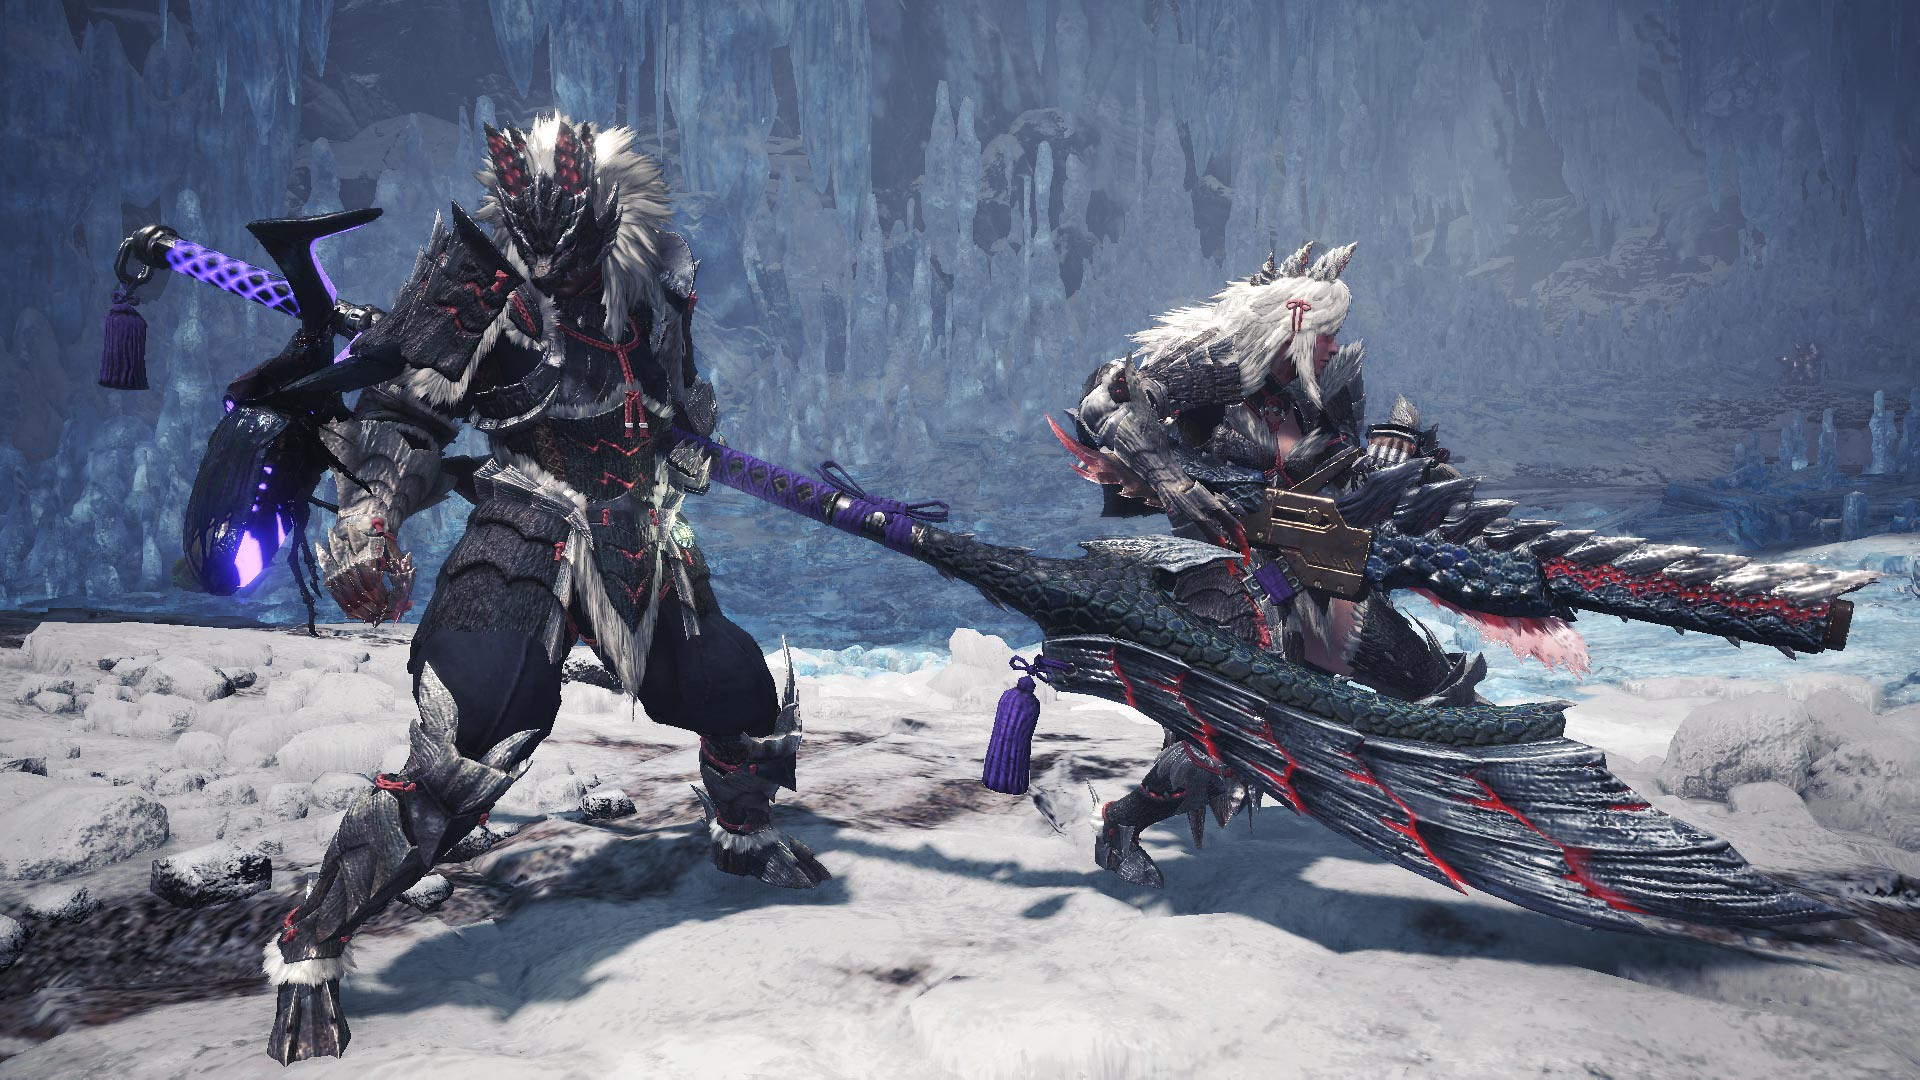 Monster Hunter World Iceborne Gets New Tundra Region Stygian